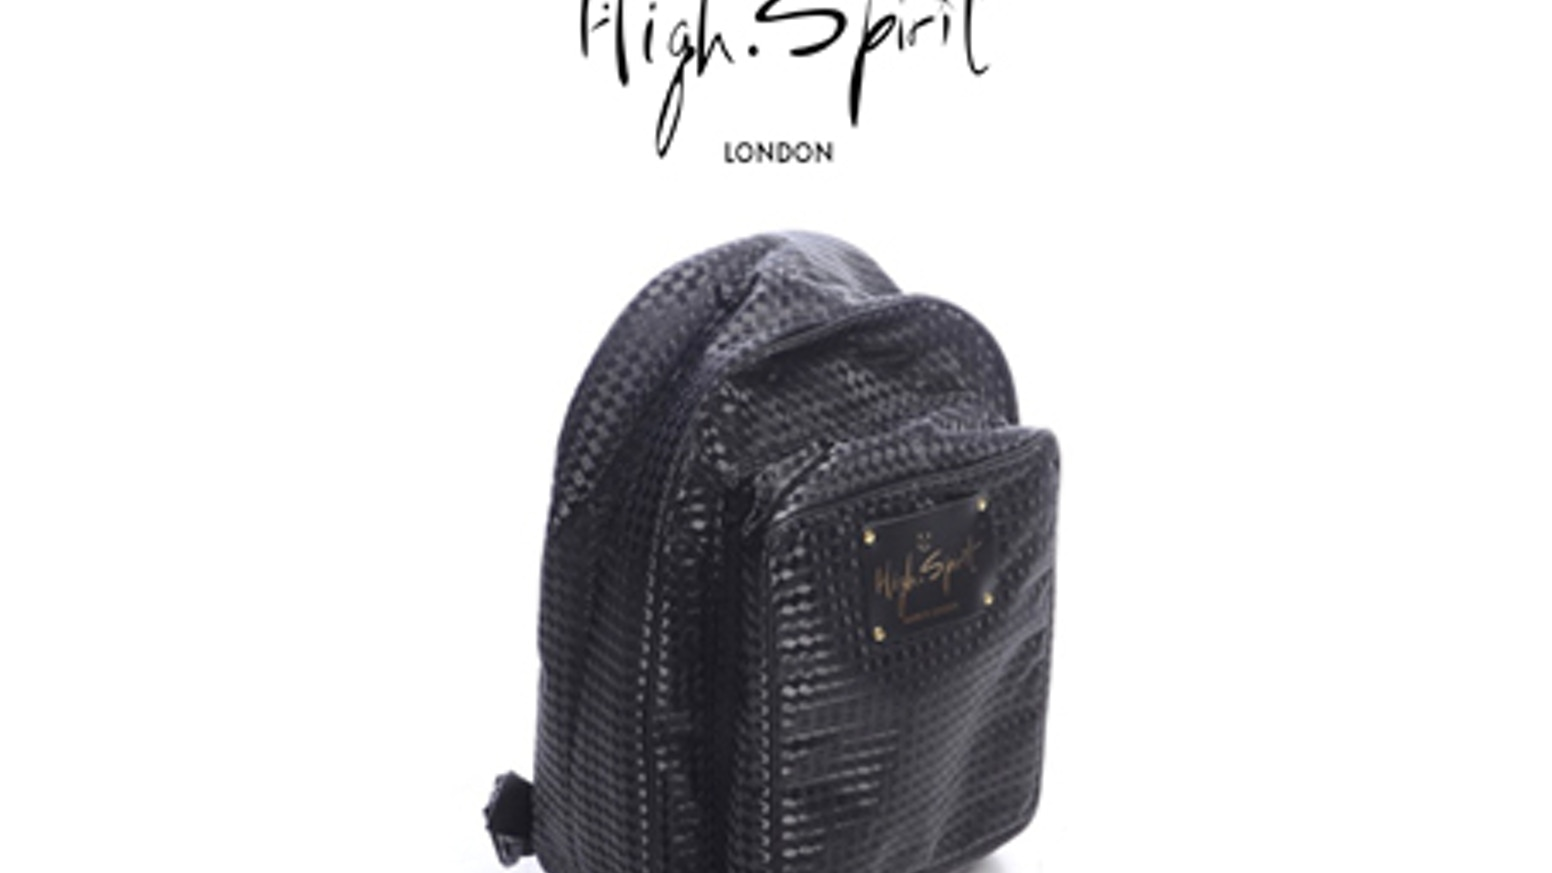 4ed5d77bfe34 High Spirit Bag  Award Winning Stylish Theft-Proof Backpack by High ...